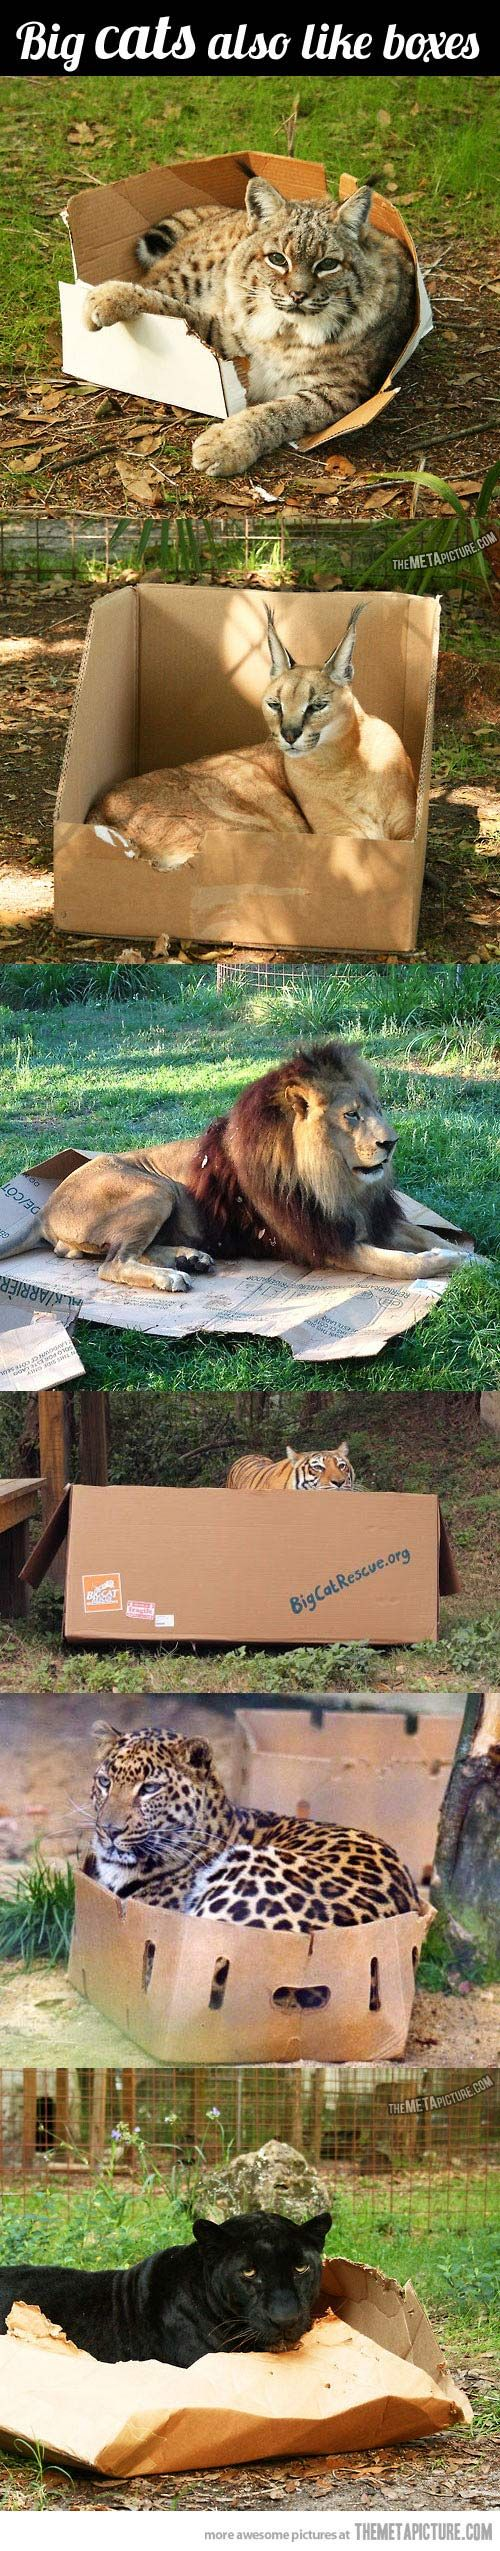 Big cats are just cats - they also love boxes!  I love the lion's box is completely crushed.  LOL: